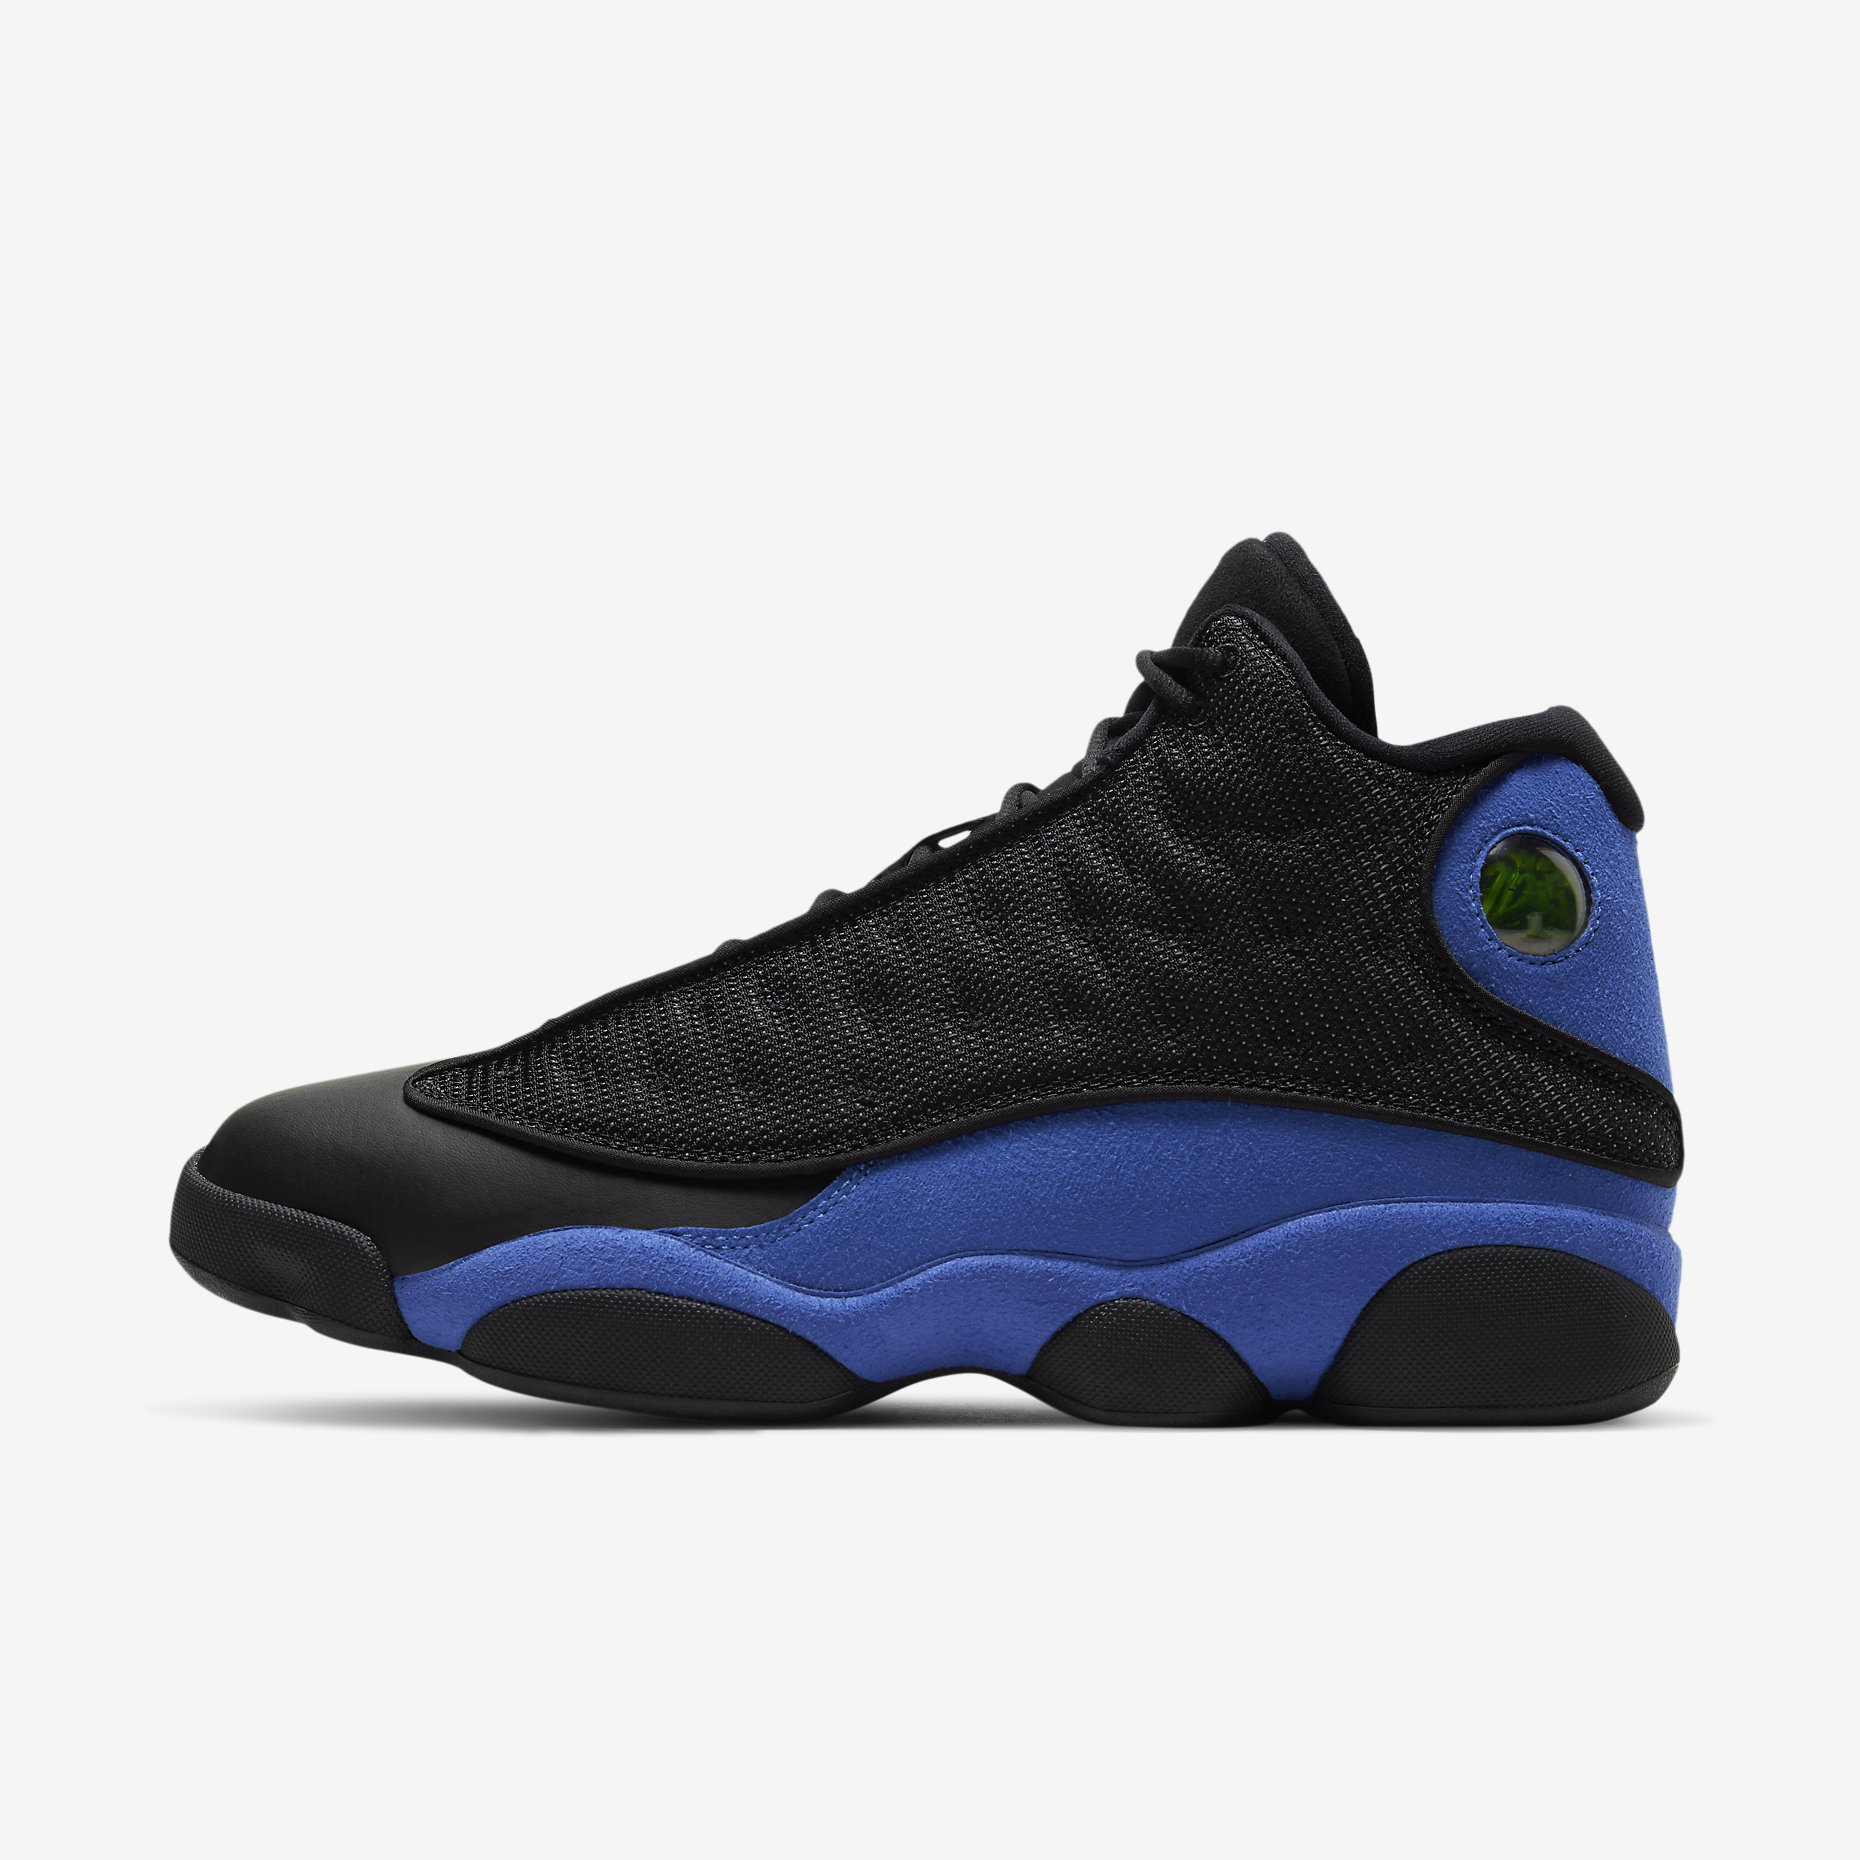 Air Jordan 13 Retro 'Black Royal'}